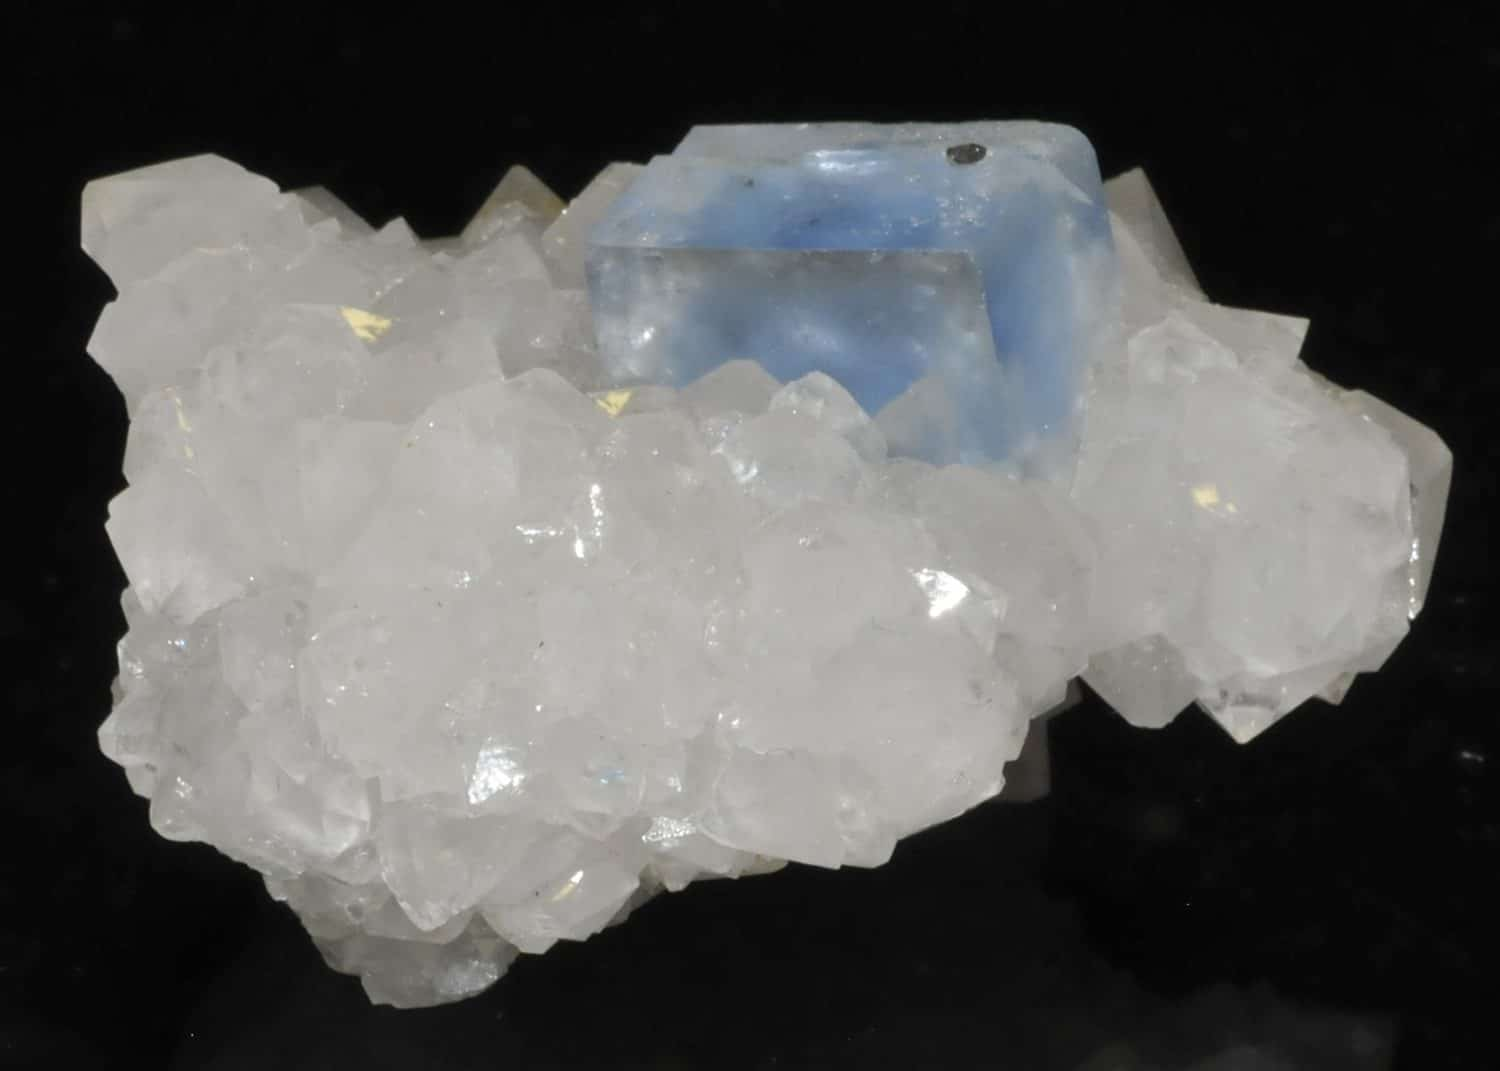 Blue fluorite from Burc (Burg, Tarn, France)